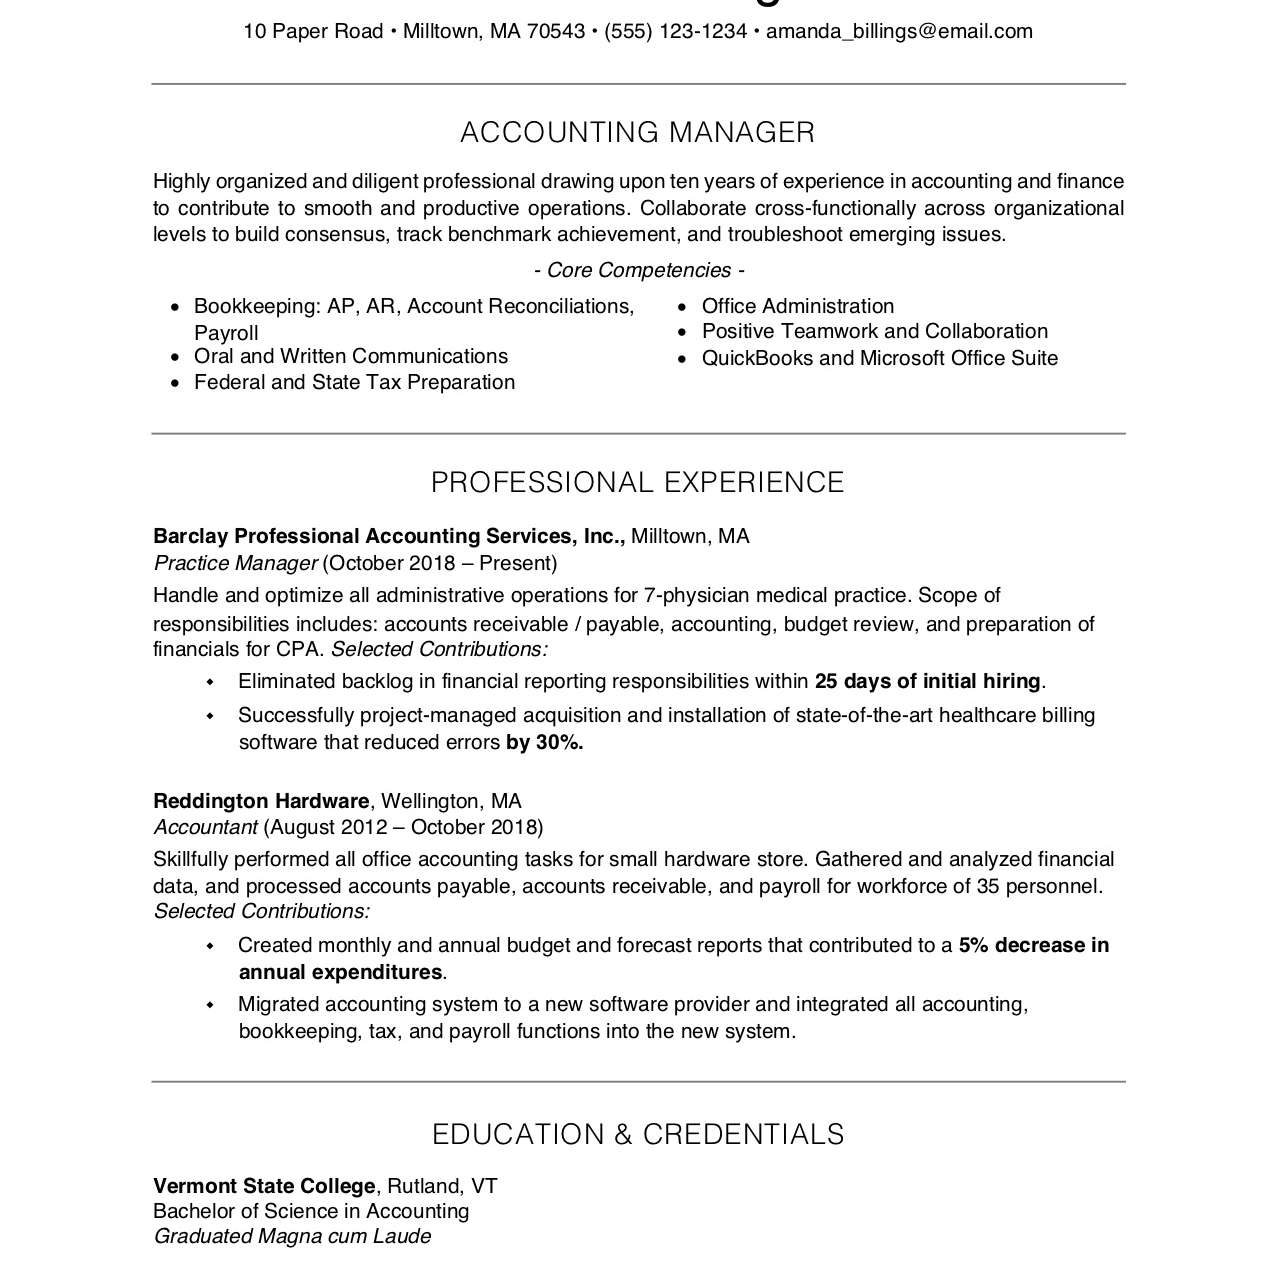 free professional resume examples and writing tips good templates 2063596res1 manual Resume Good Resume Templates Free